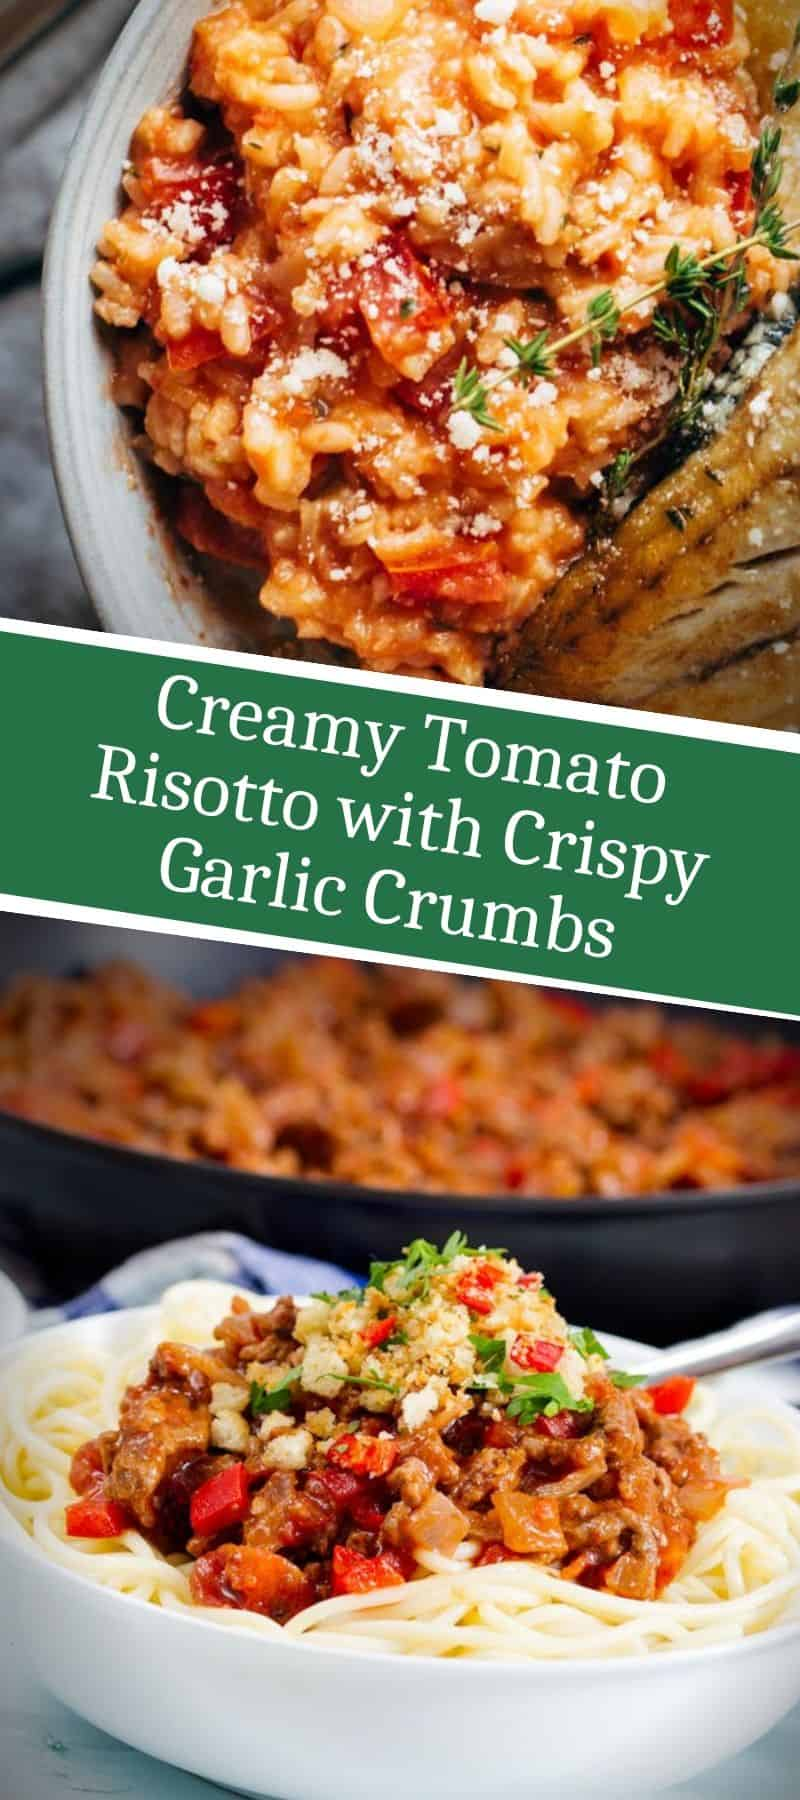 Creamy Tomato Risotto with Crispy Garlic Crumbs 3